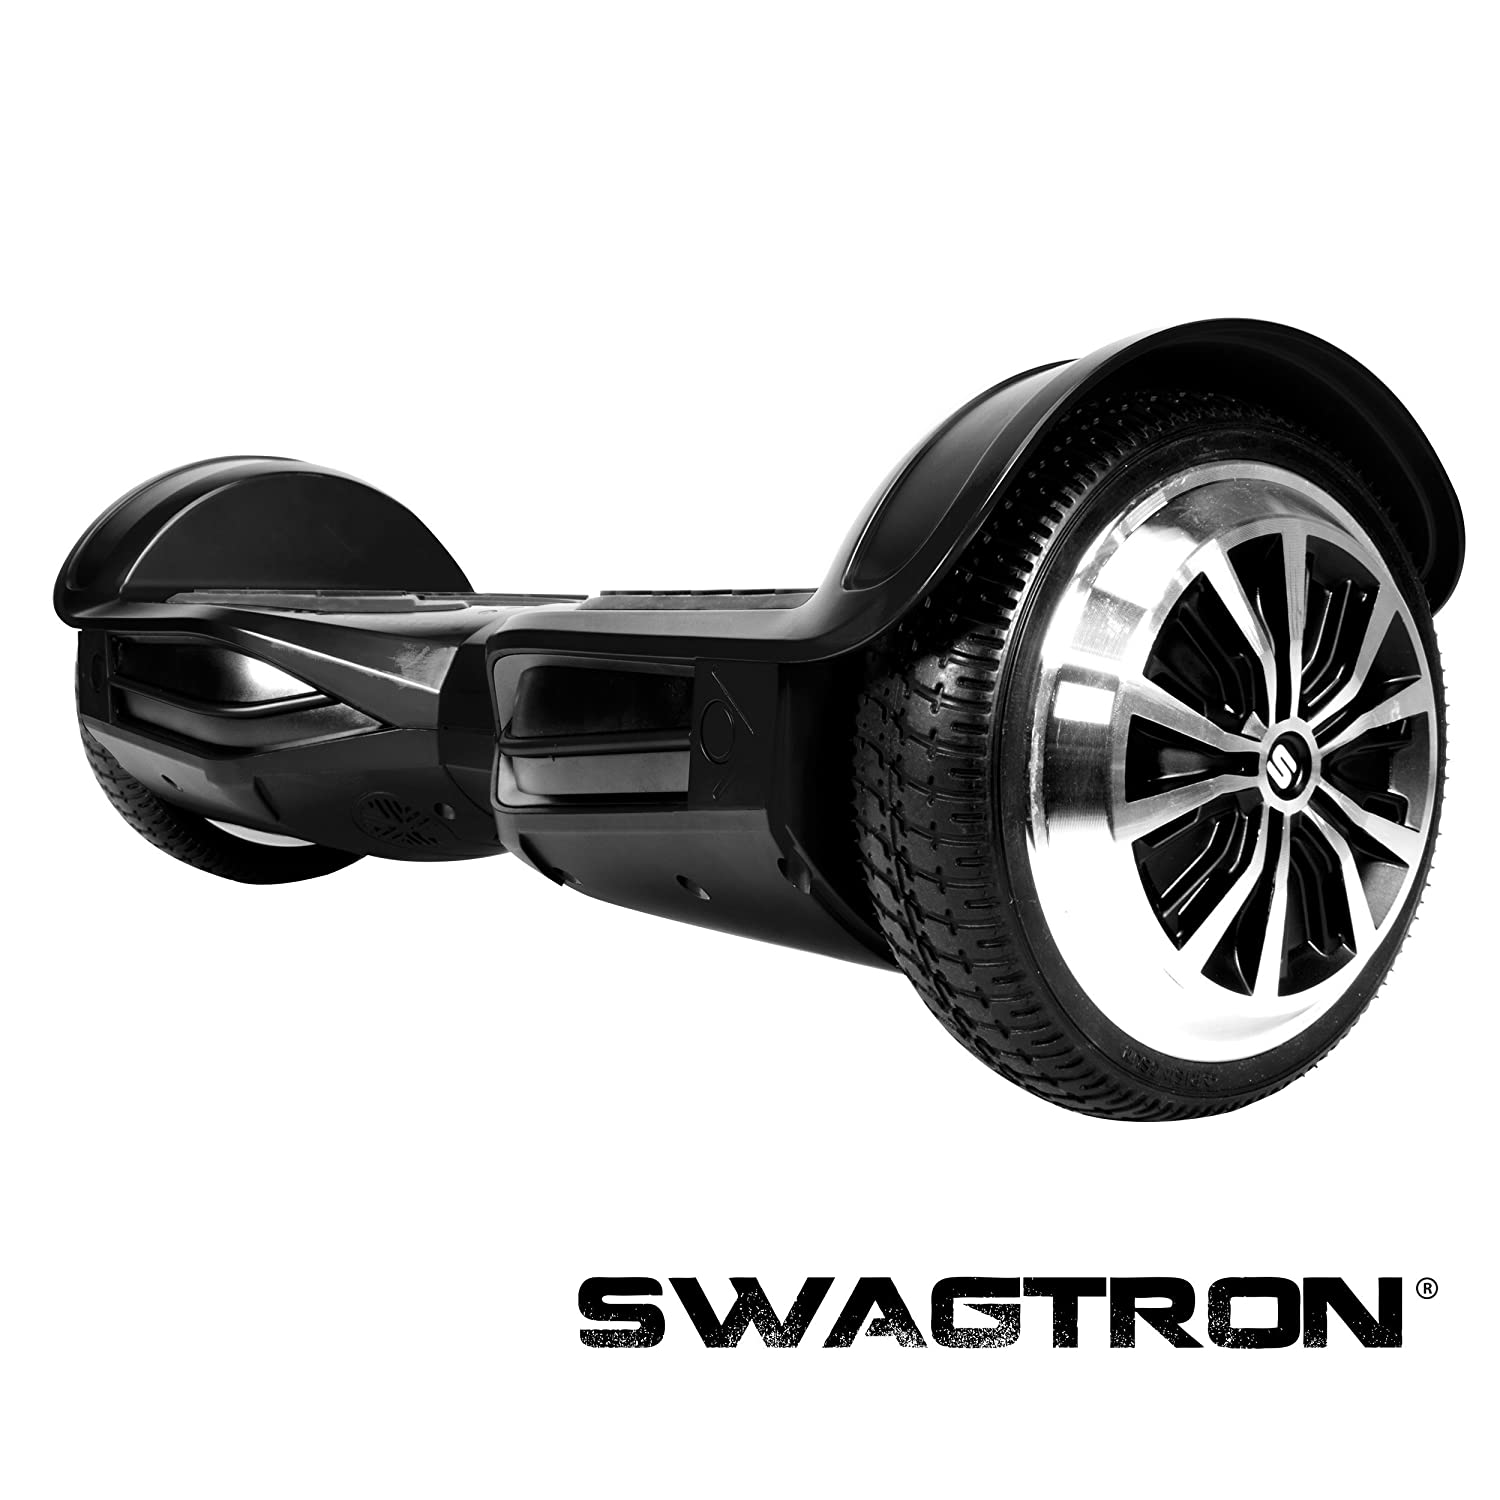 Top 10 Best Hoverboard Reviews in 2020 6